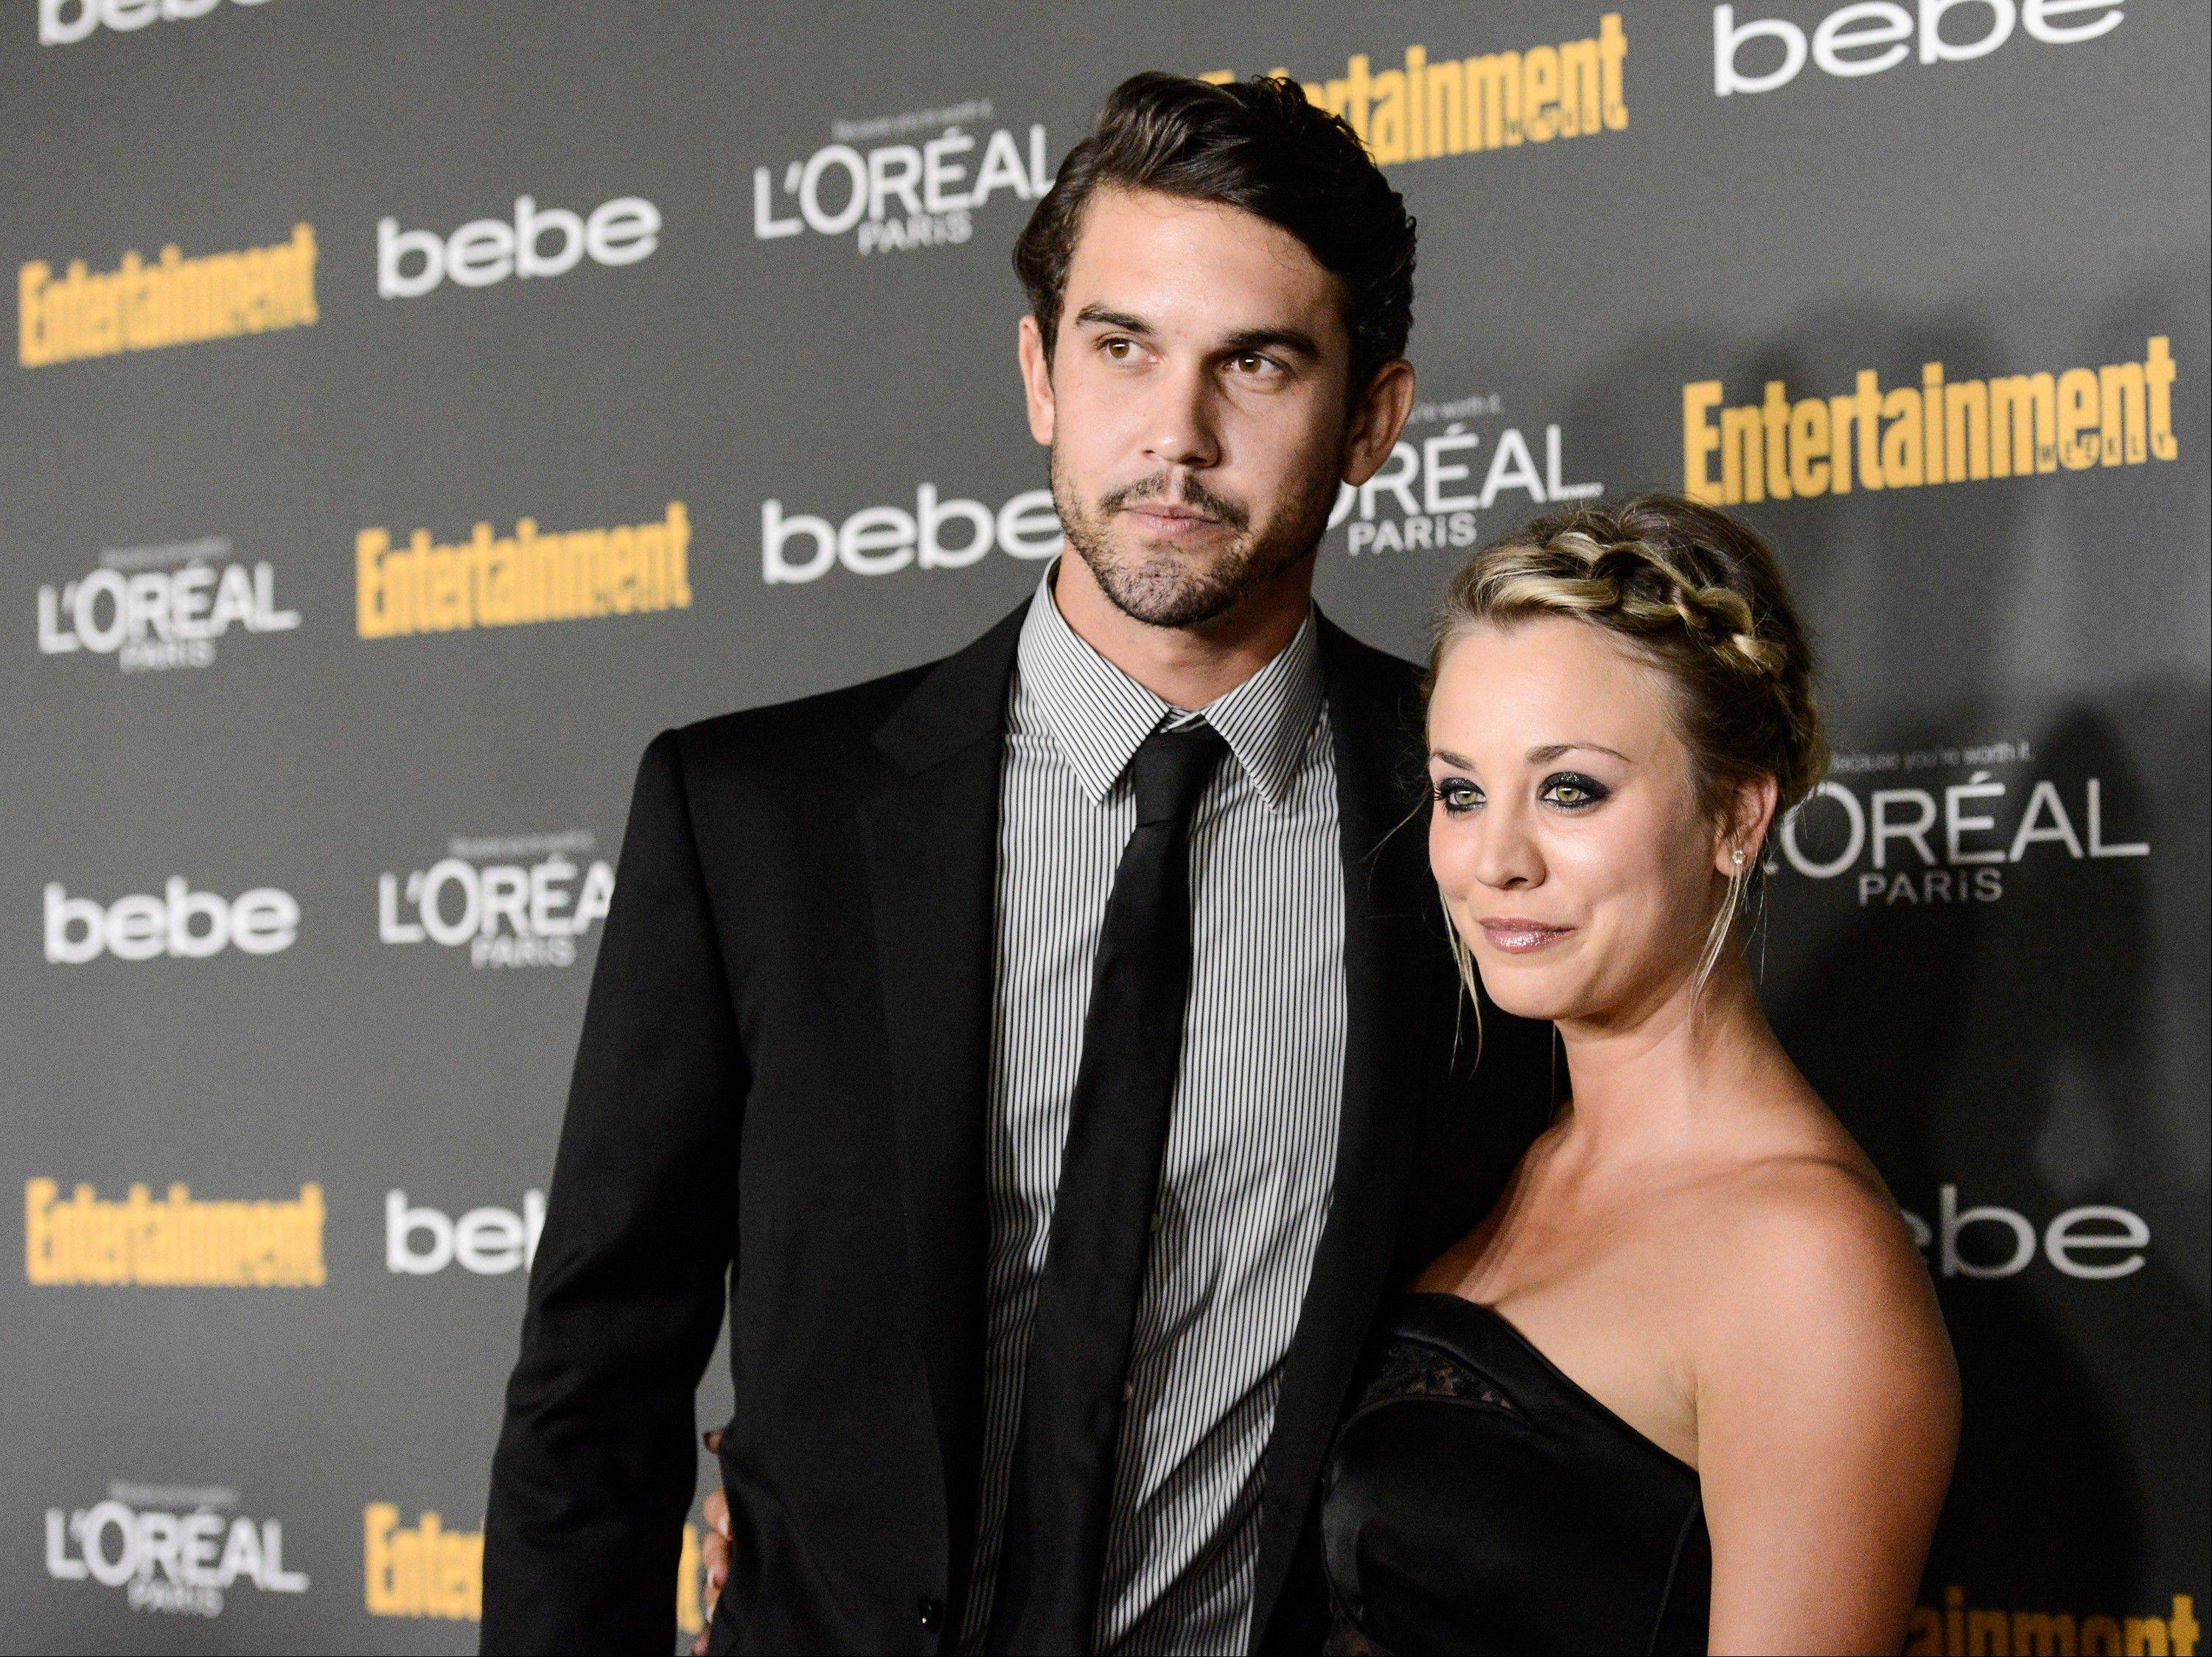 �The Big Bang Theory� star Kaley Cuoco wed tennis pro Ryan Sweeting in a New Year�s Eve ceremony in California, her rep confirms.